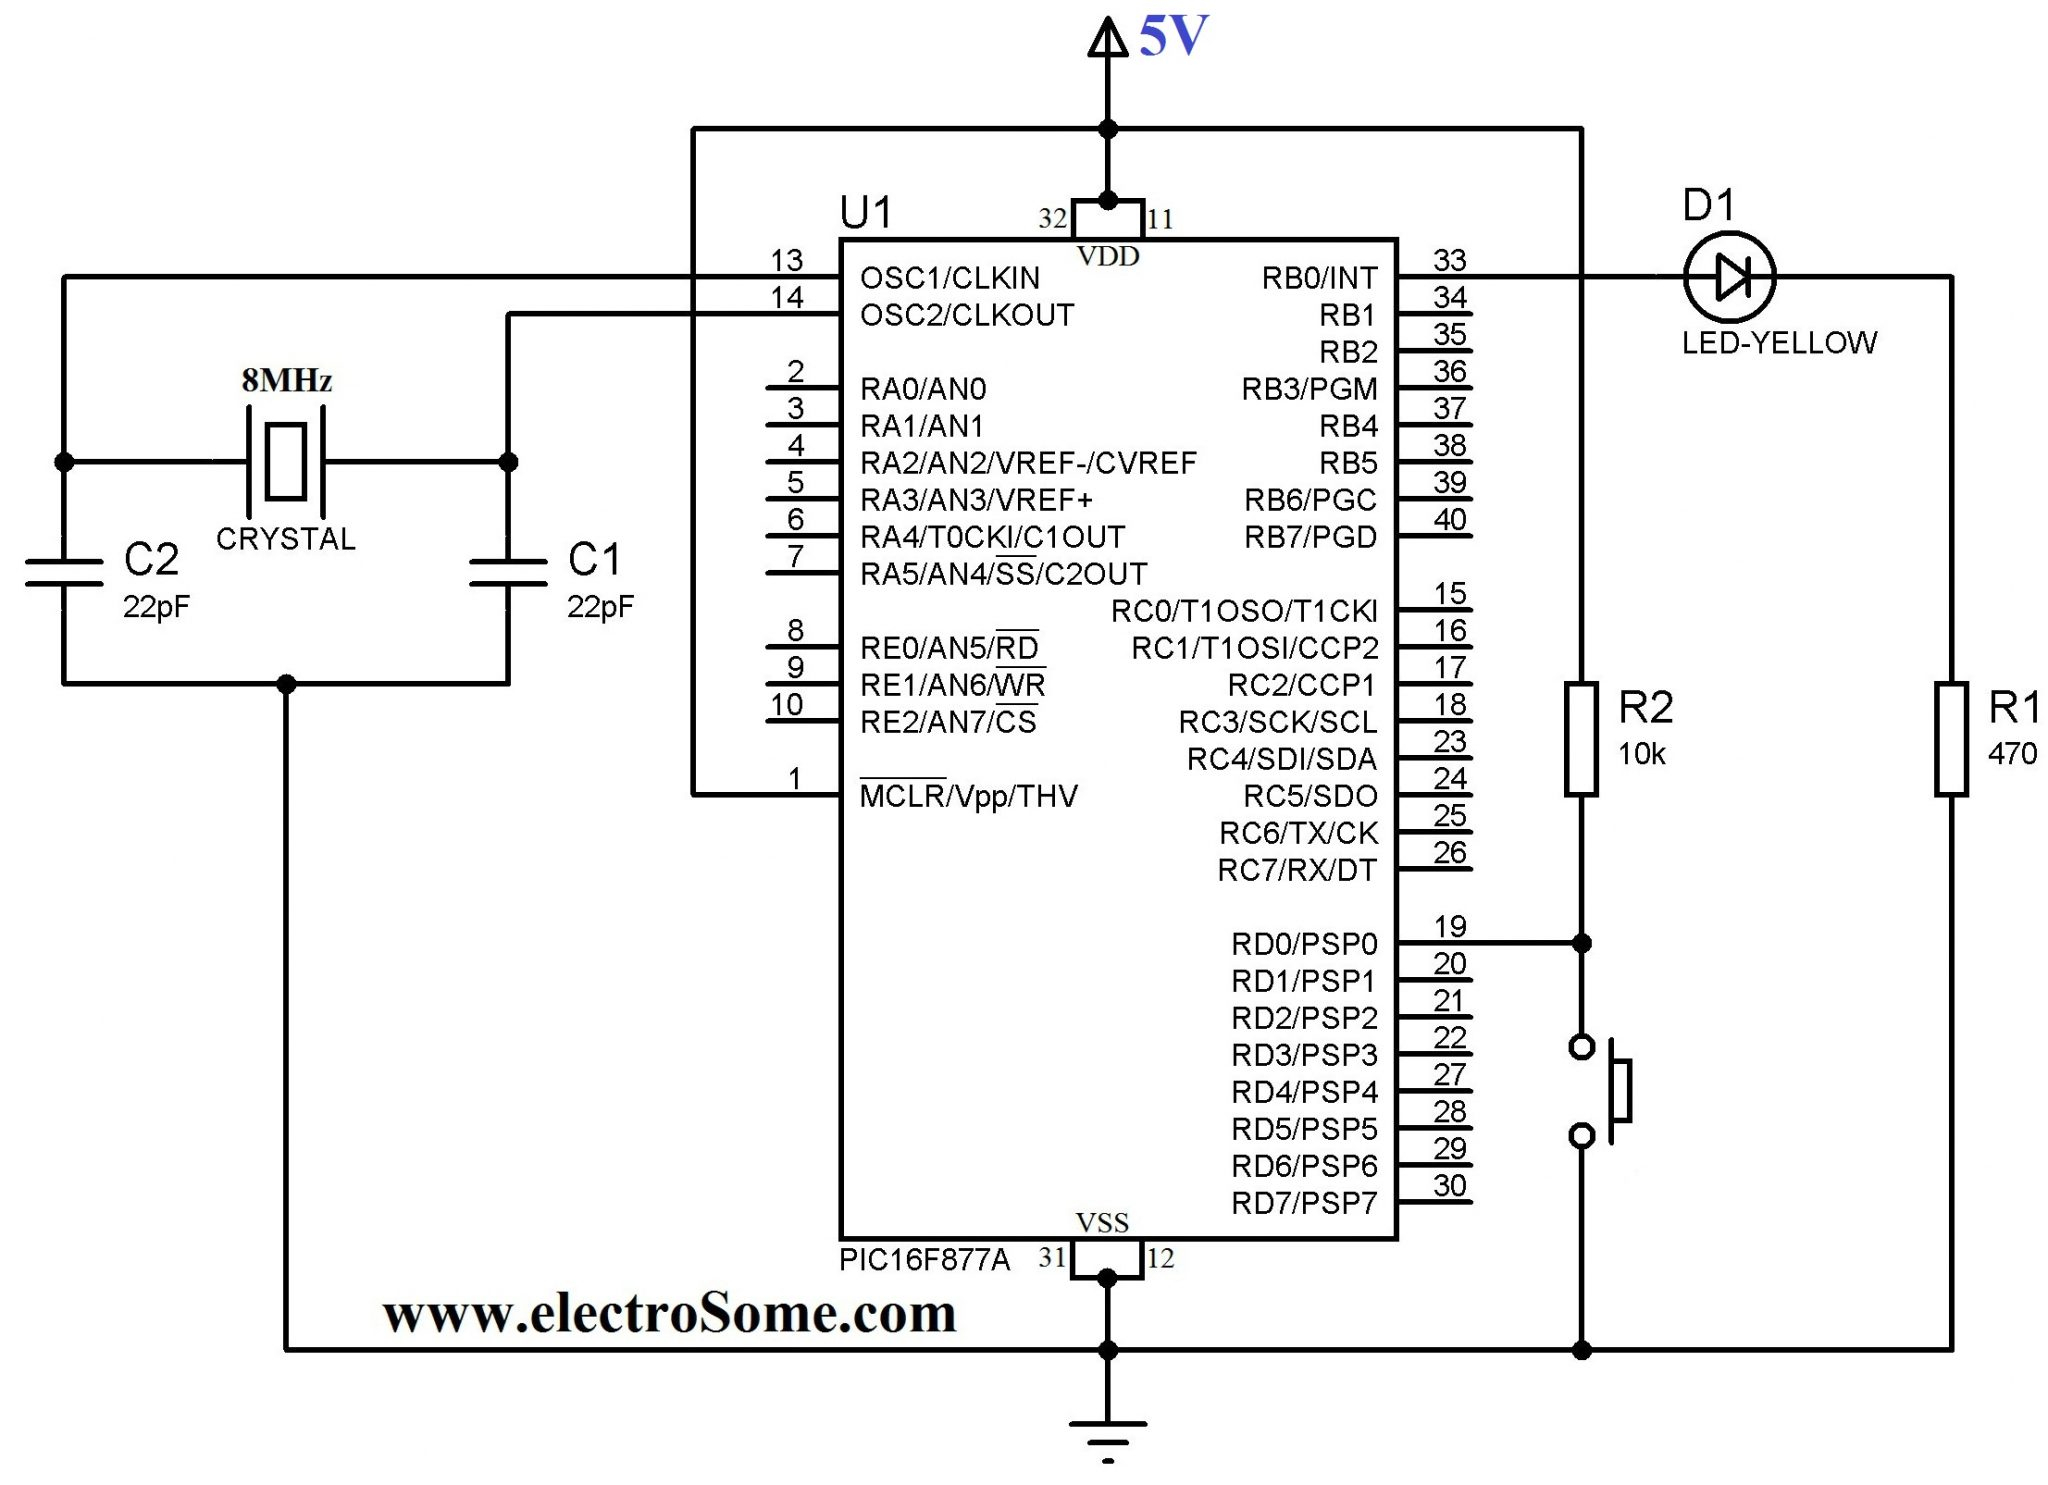 Defrost Timer Diagram Besides White Rodgers Thermostat Wiring Diagram